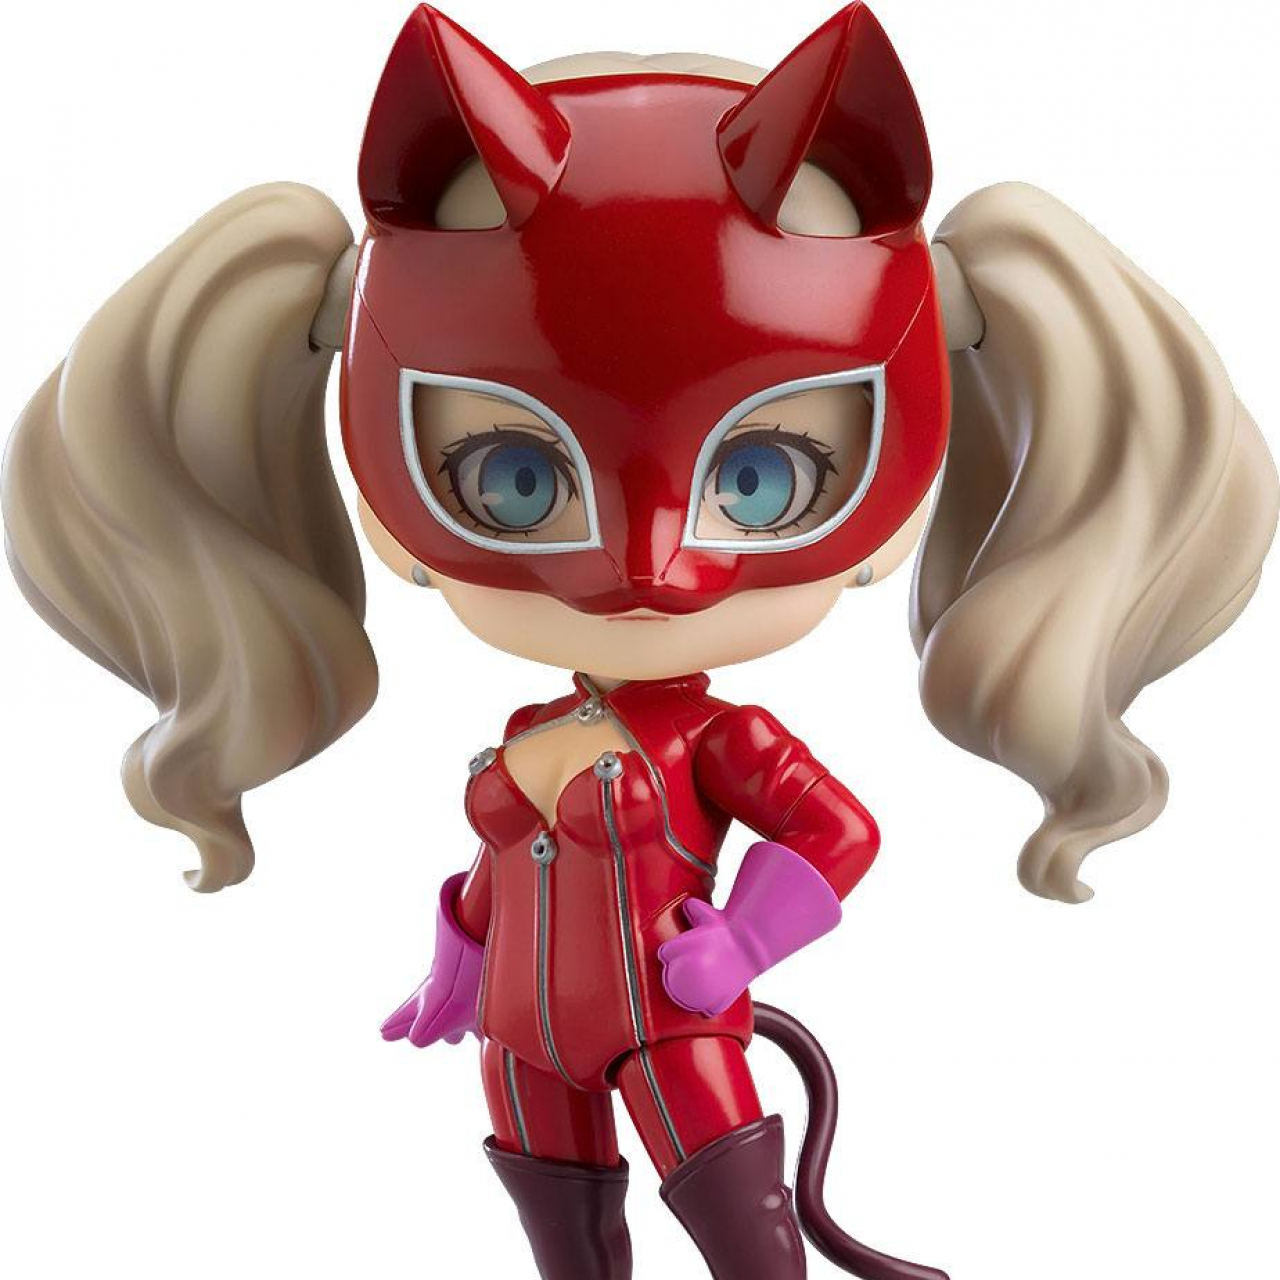 Persona 5 The Animation Nendoroid Action Figure Ann Takamaki Phantom Thief Ver. 10 cm